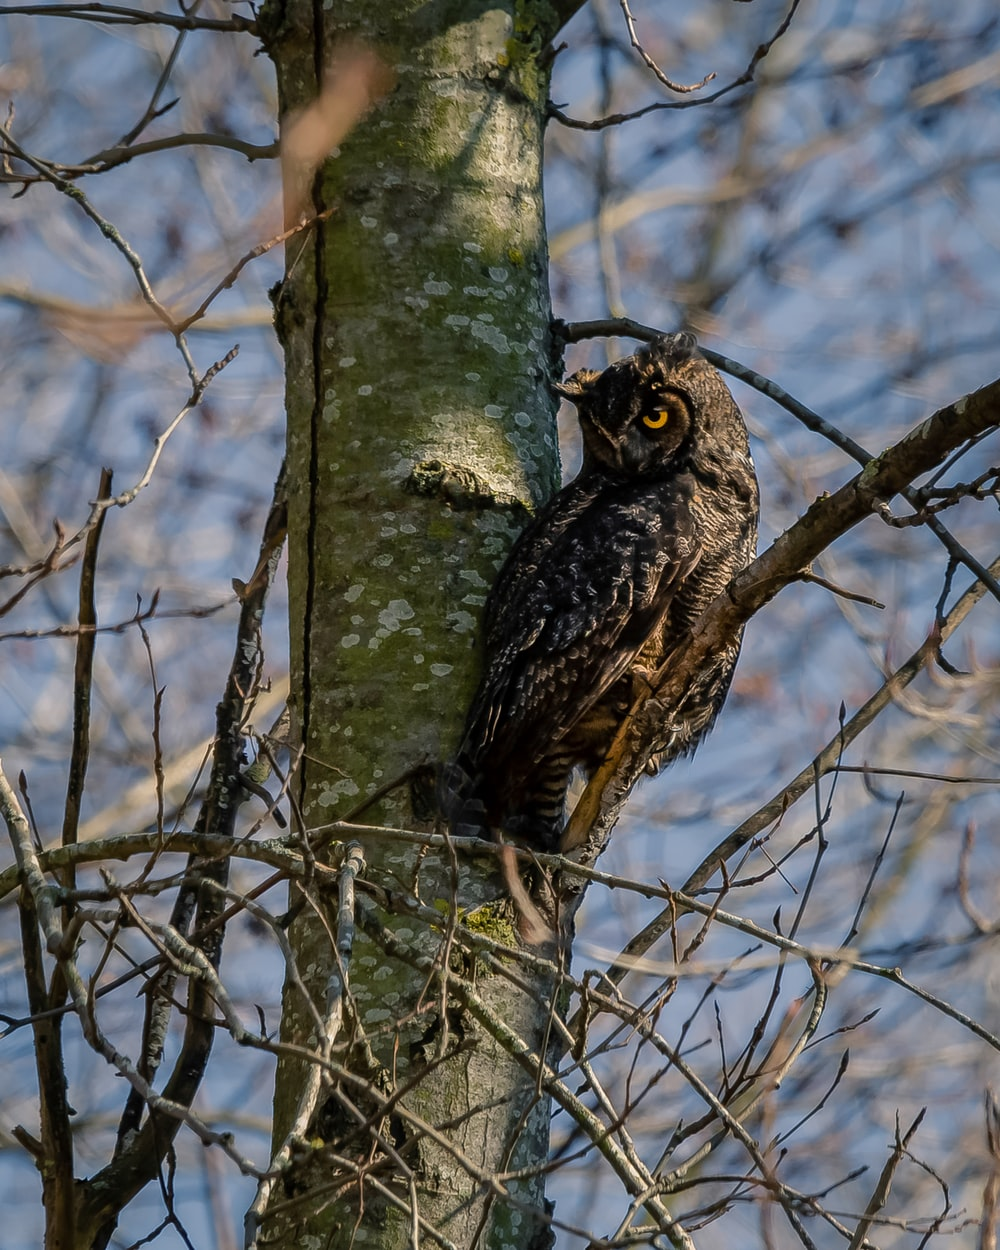 black and white owl on brown tree branch during daytime